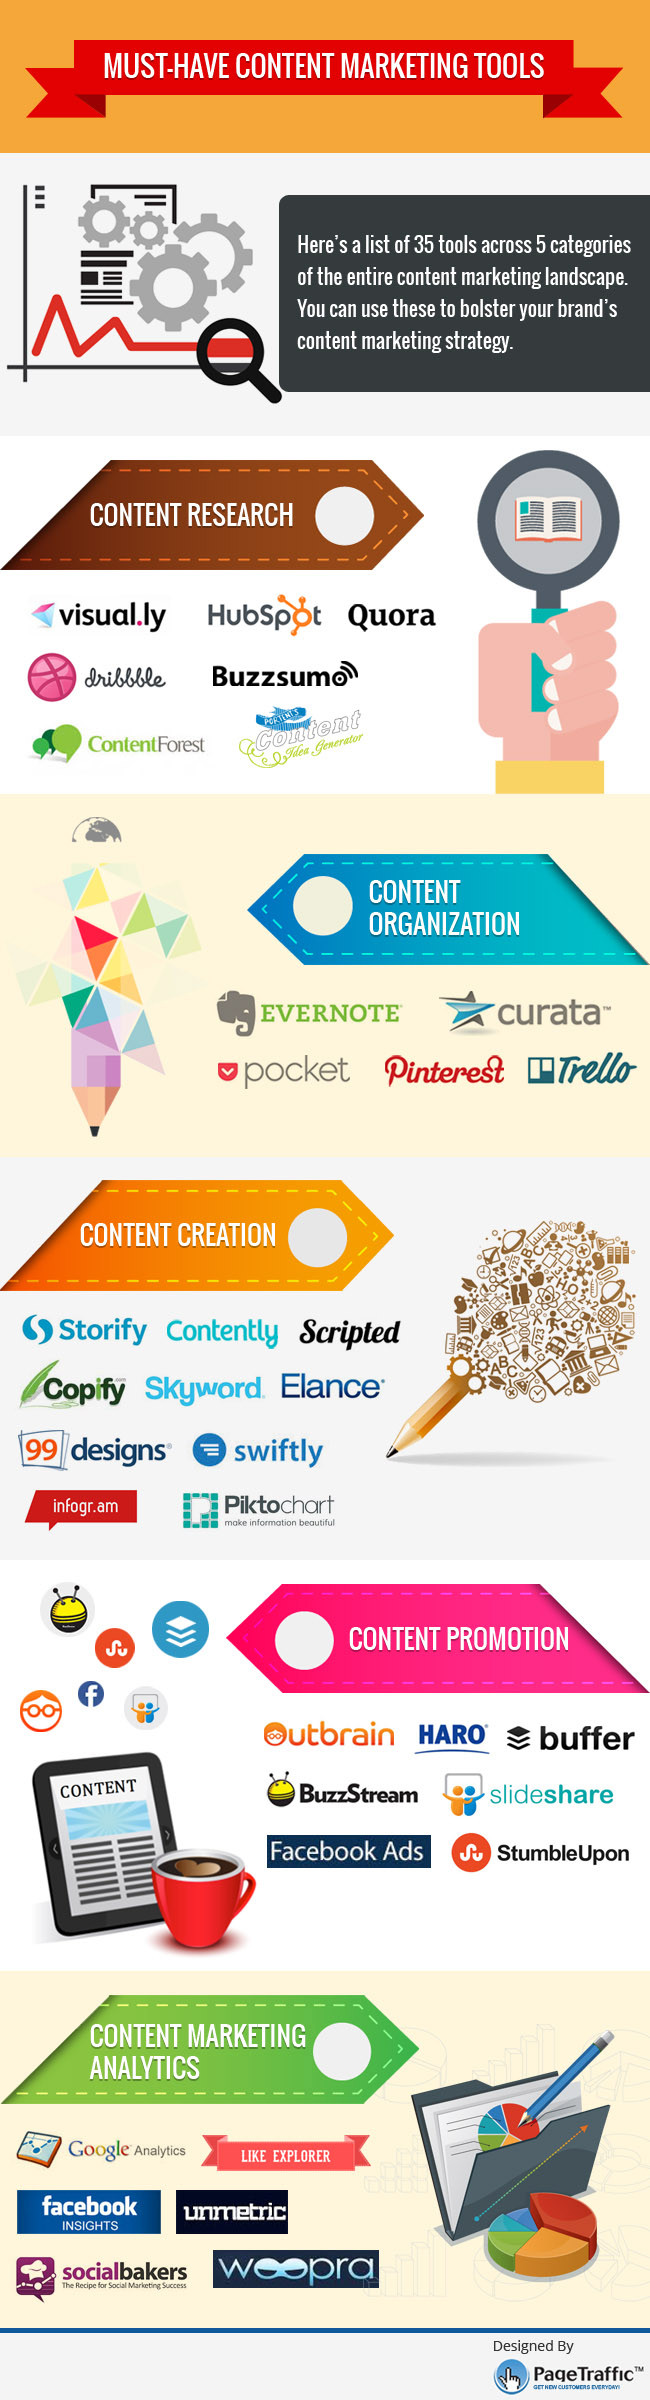 Infographic lists a range of content tools